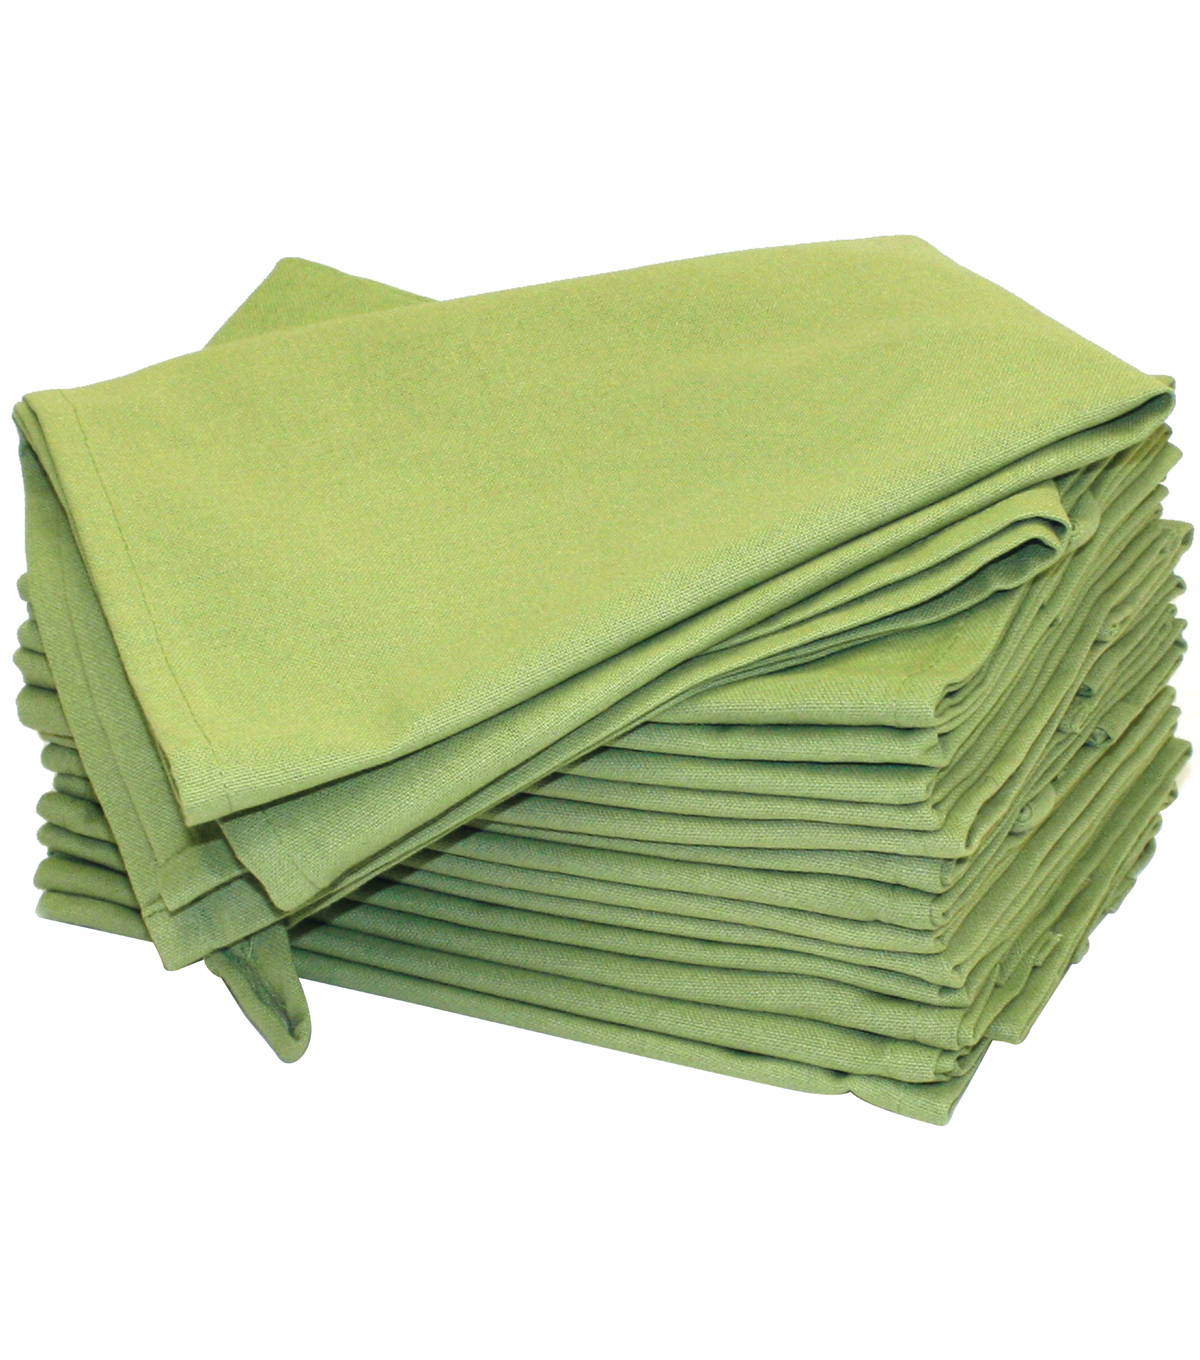 Hemmed Color Dyed Kitchen Towels 18\u0022X28\u0022 2/Pkg-Avocado Green